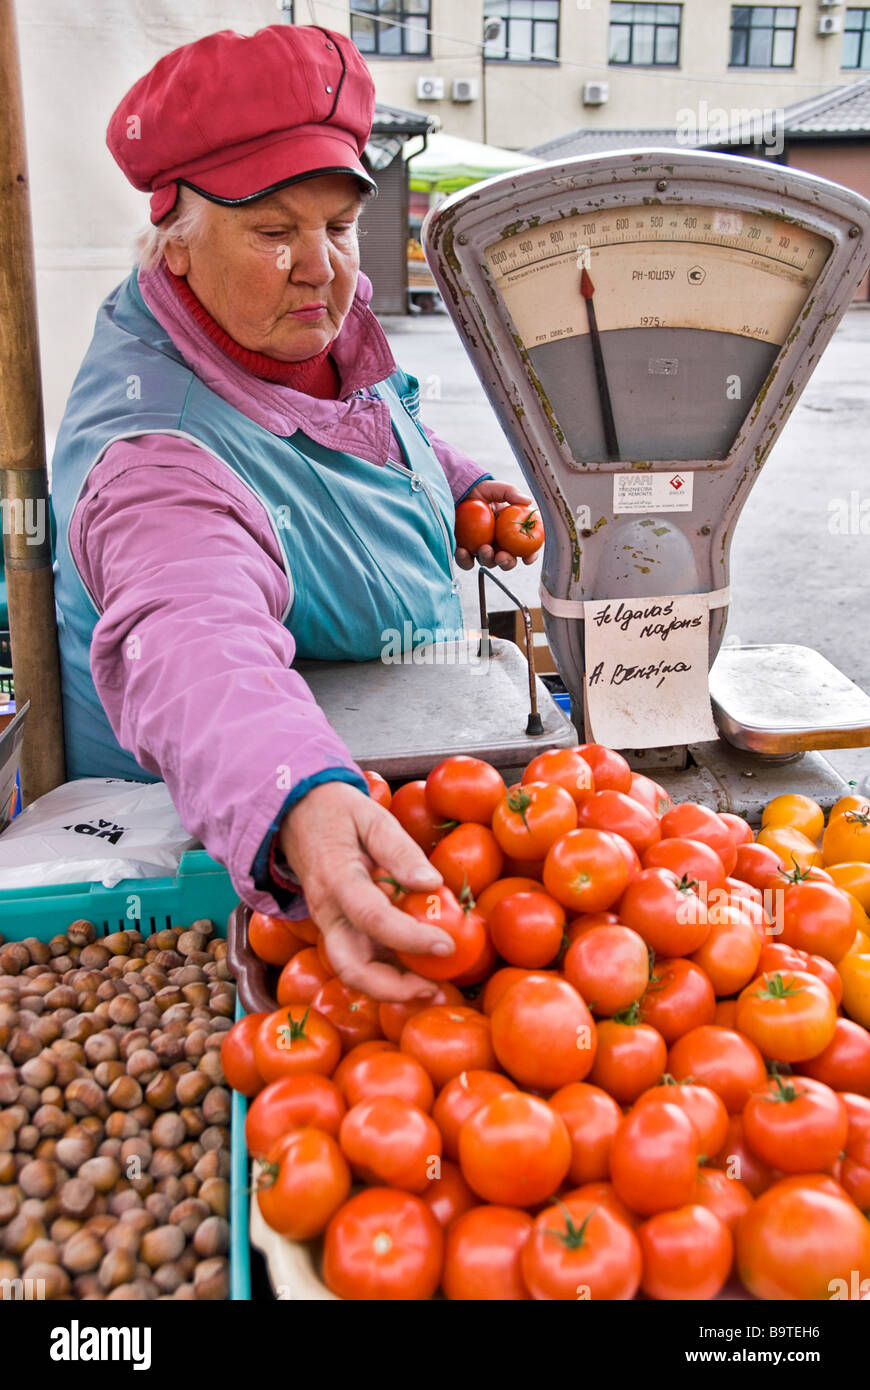 Woman selling tomatoes in a street market, Riga, Latvia, Europe - Stock Image